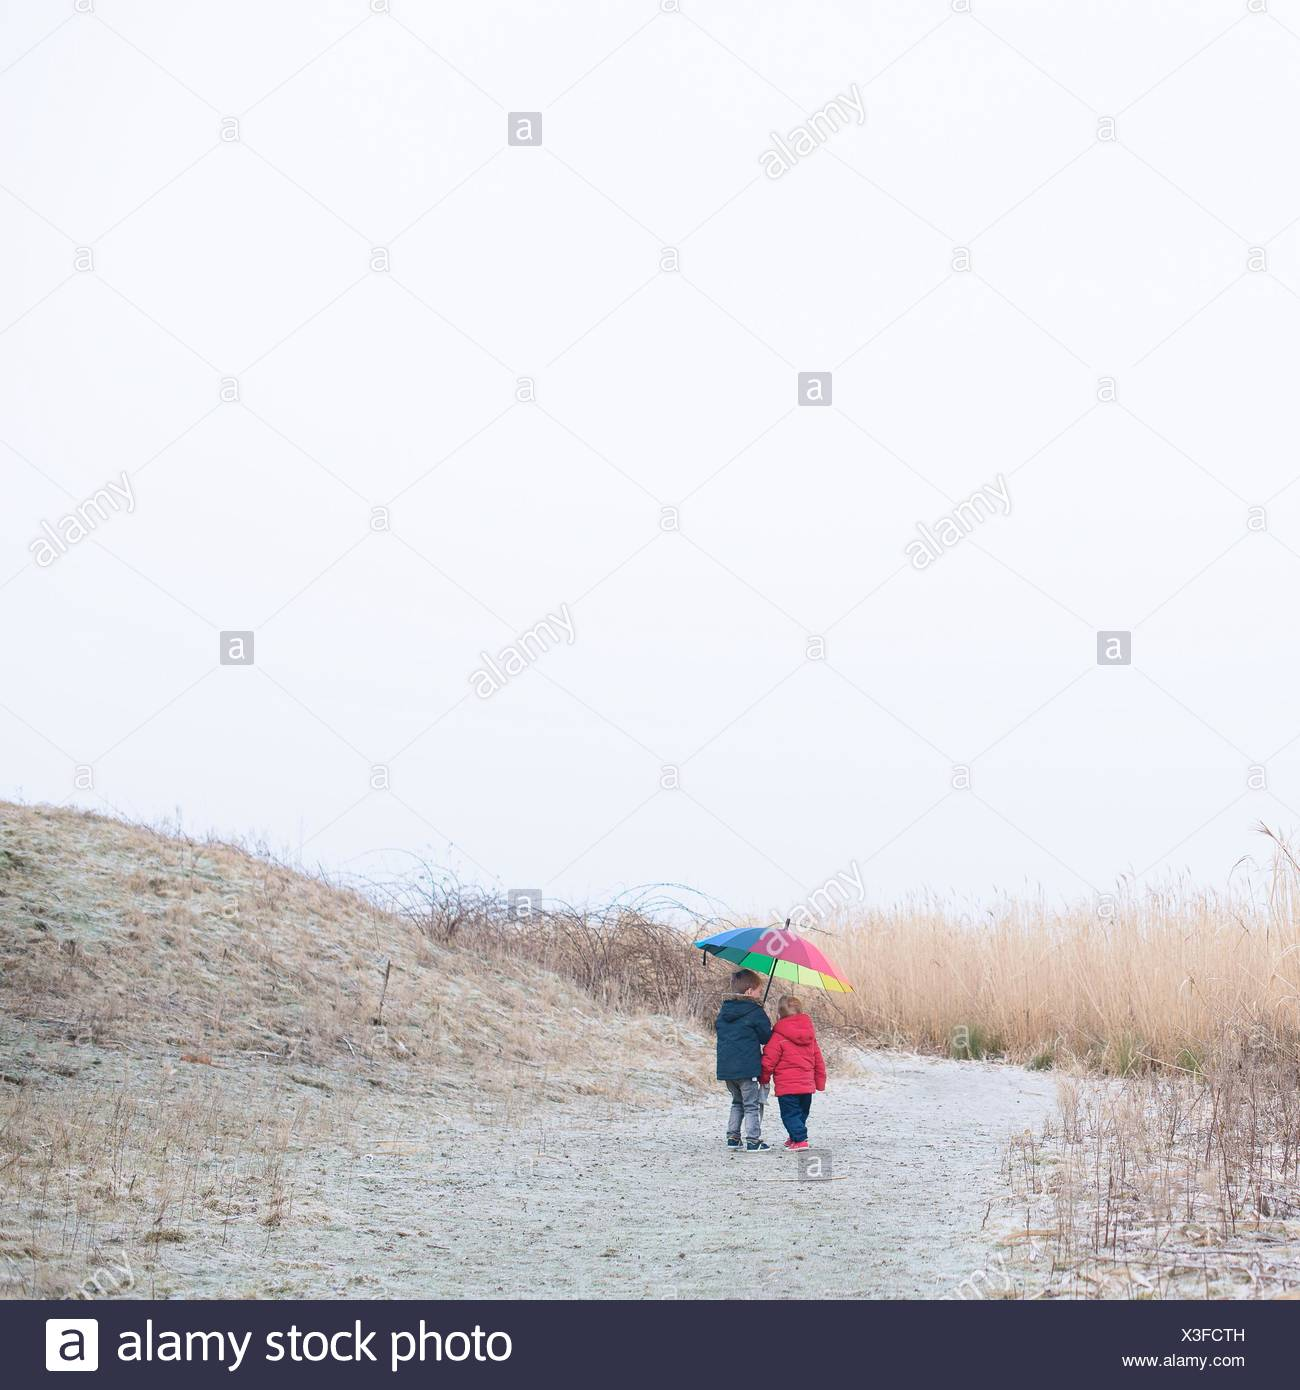 Two boys walking on beach with a multi-colored umbrella - Stock Image